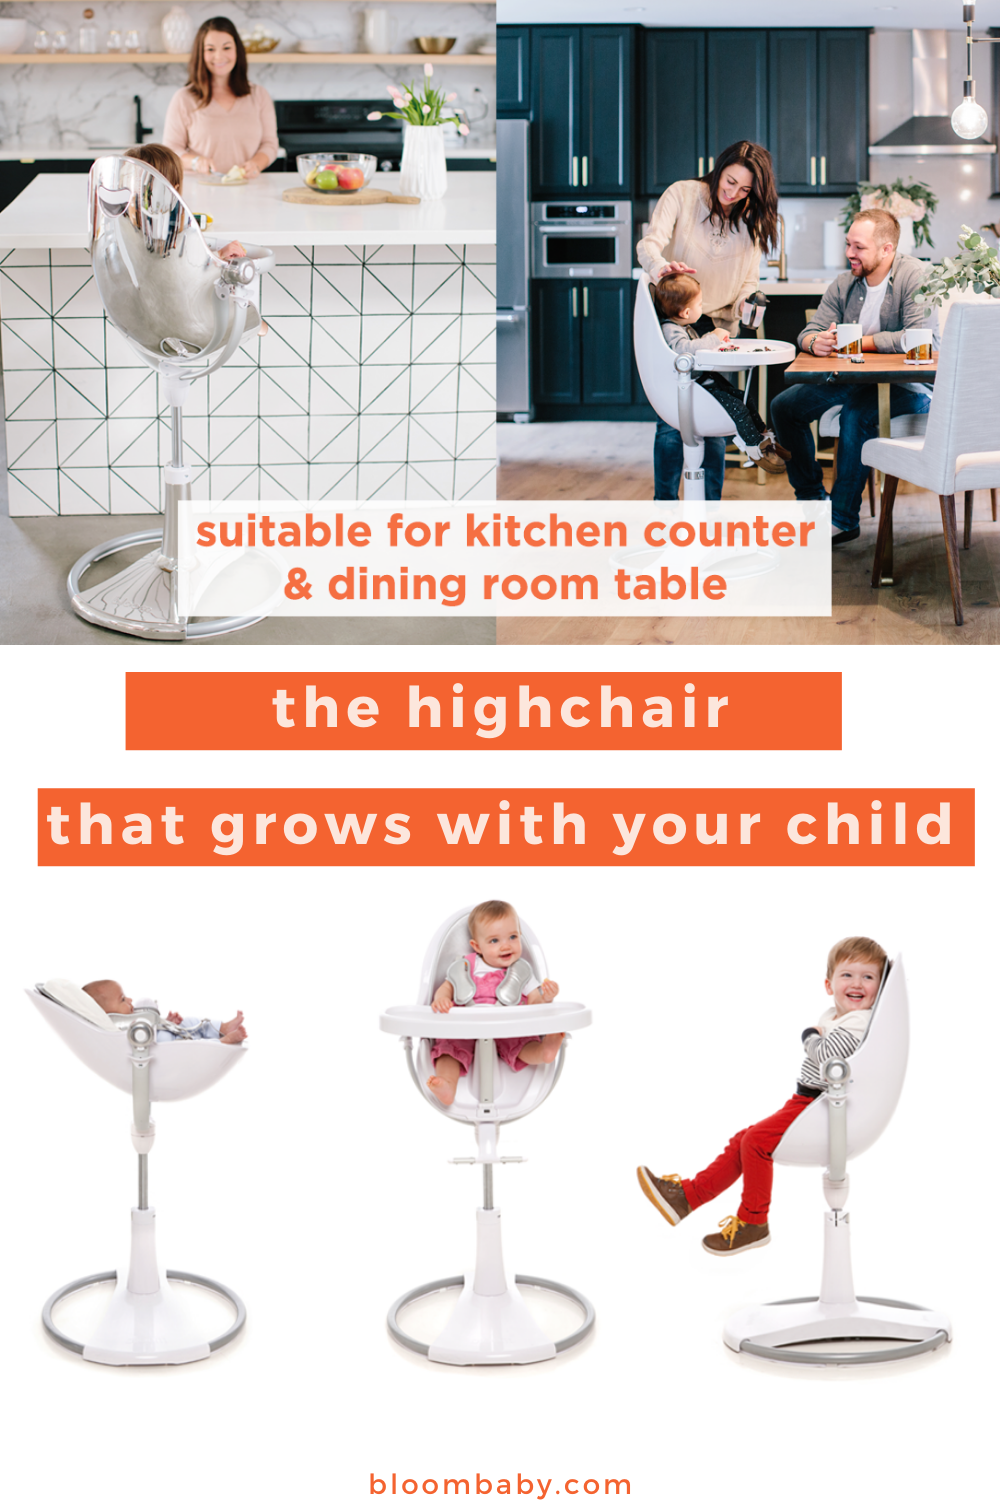 Highchair For Kitchen Counter Dining Room Table In 2020 High Chair Kitchen Counter Dining